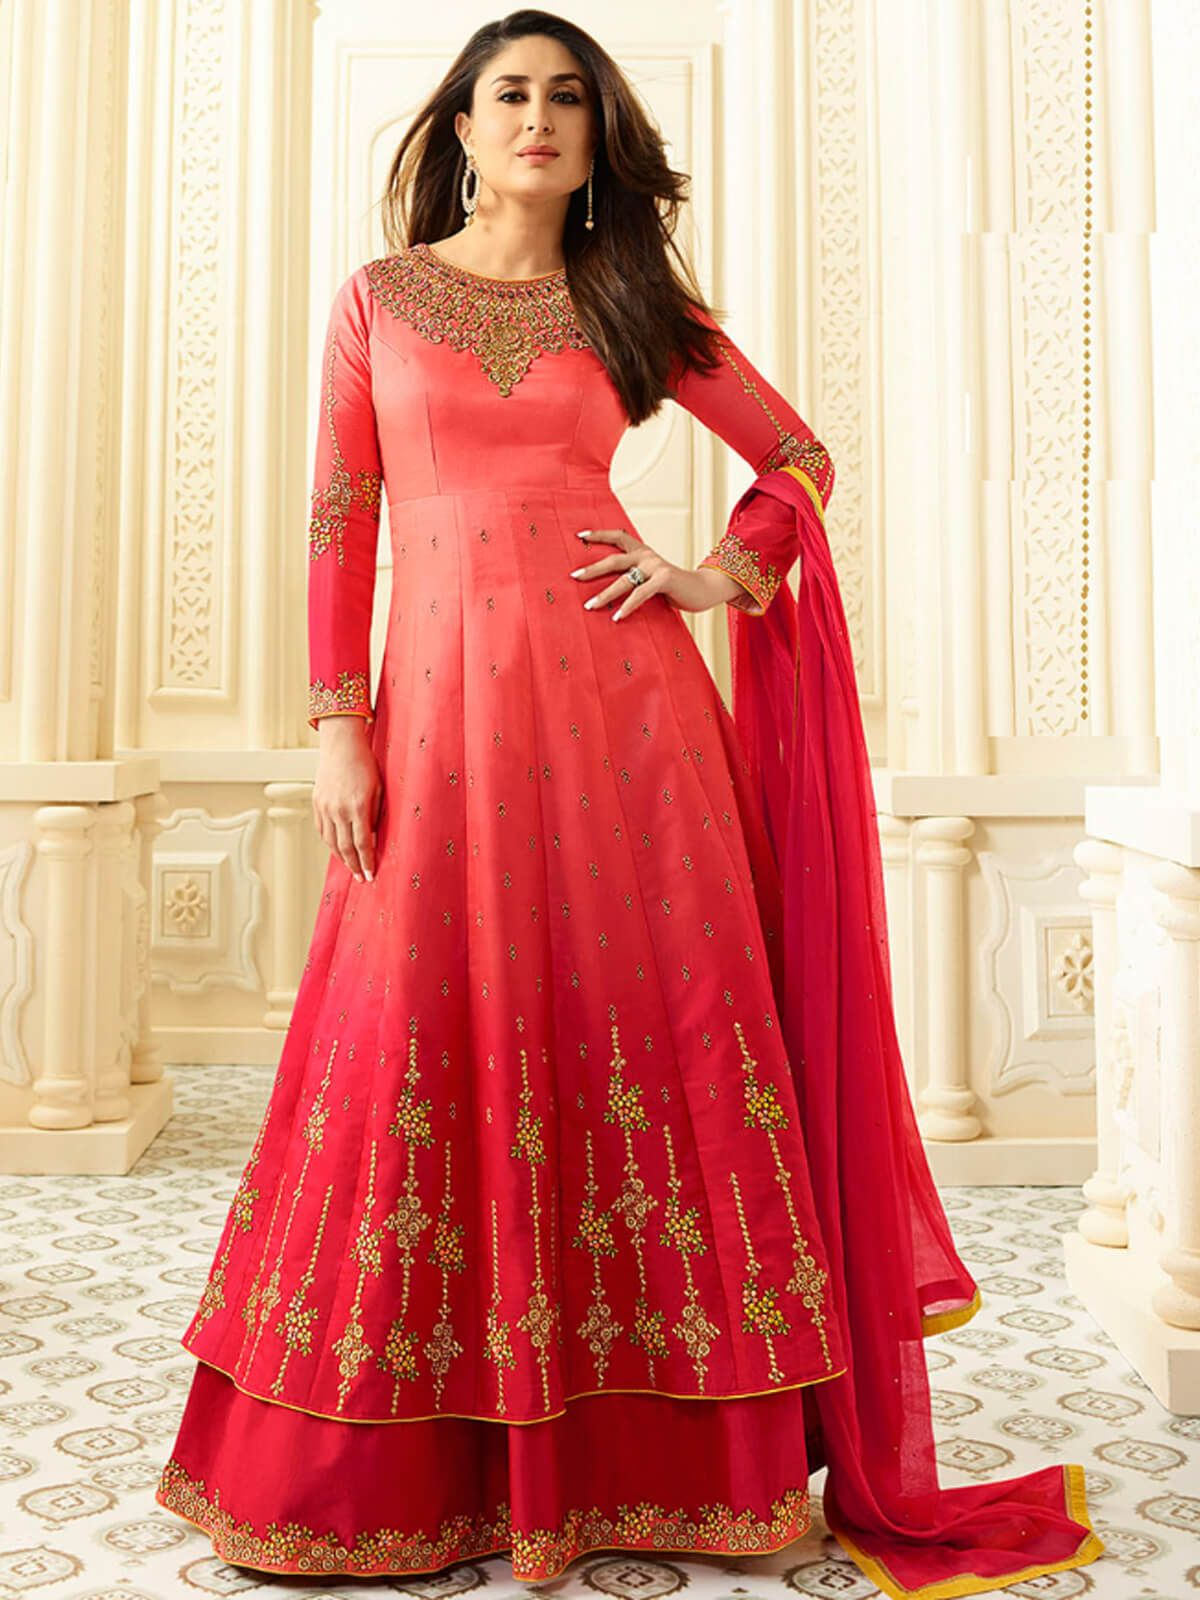 Marvelous pink georgette party wear designer salwar suit having